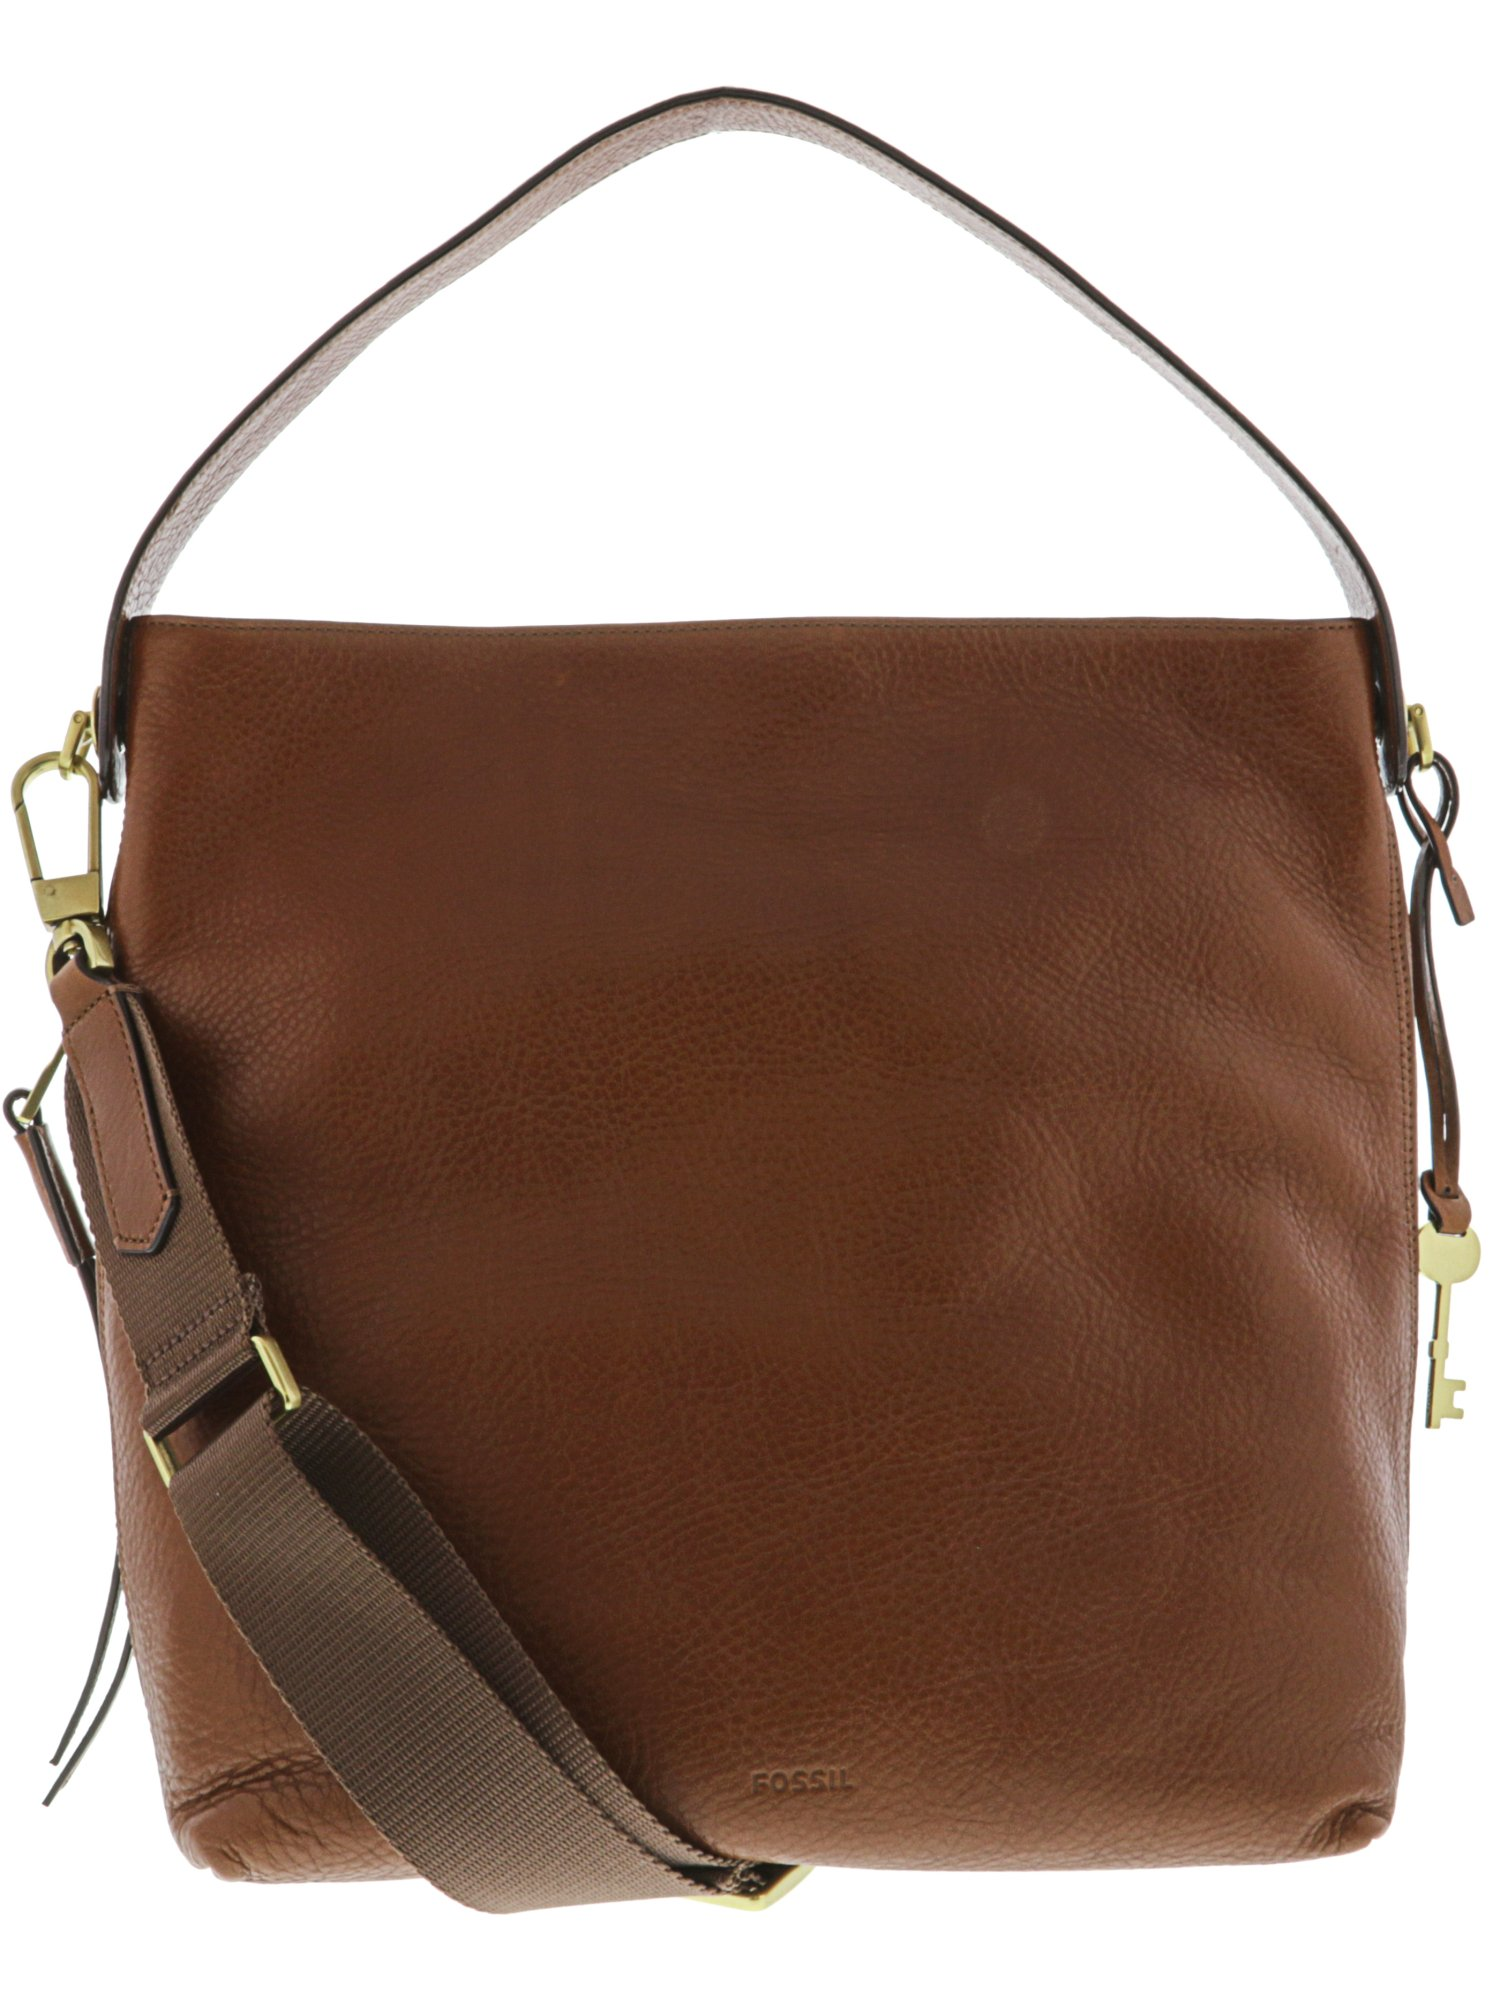 6c8bd4a4a8 Fossil Women s Maya Small Leather Cross Body Bag Hobo